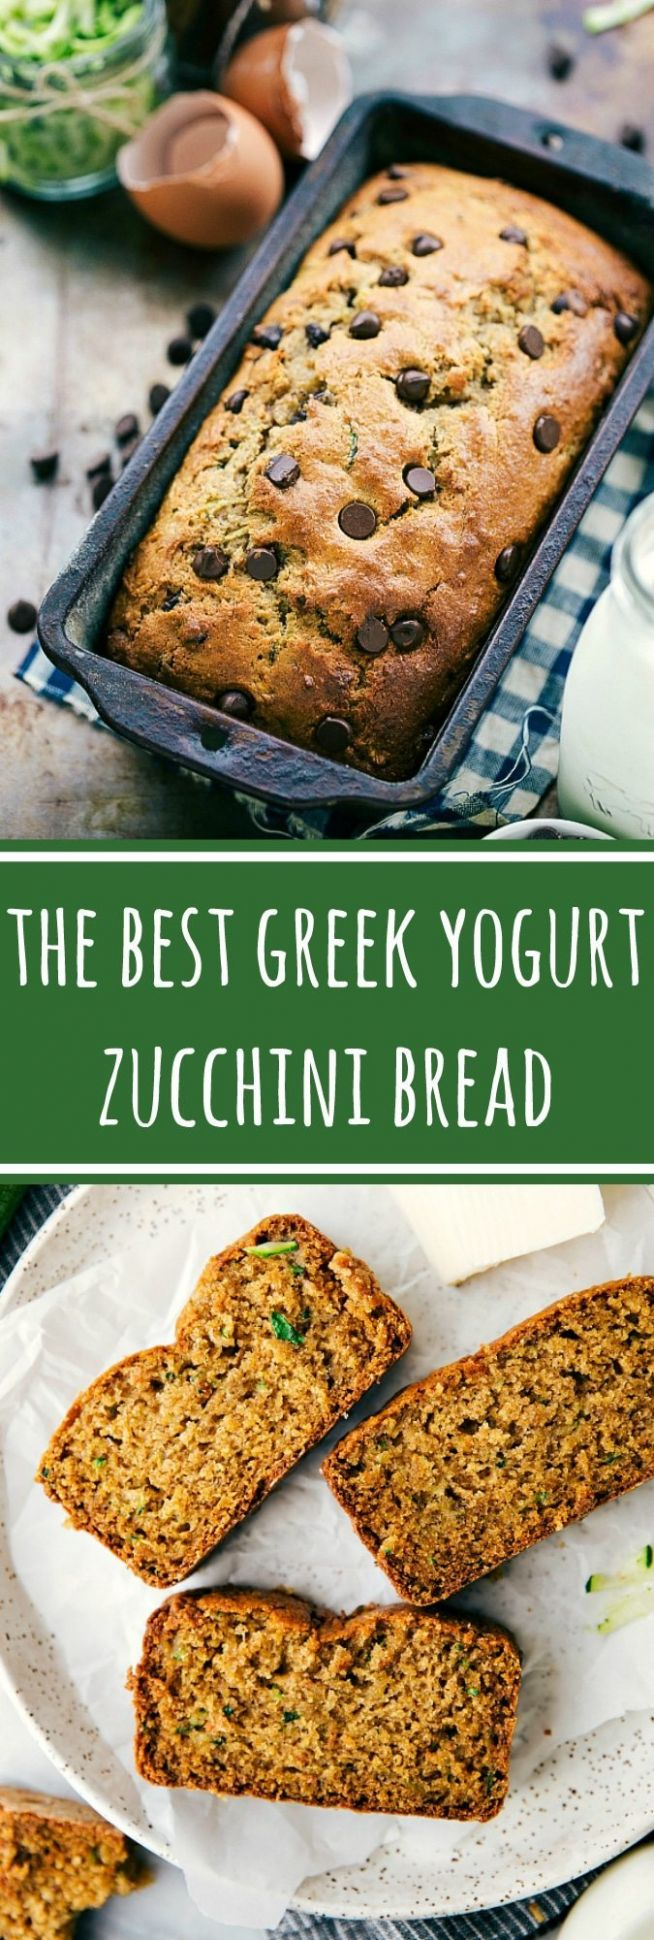 Healthy Greek Yogurt Zucchini Bread - Healthy Recipes Zucchini Bread